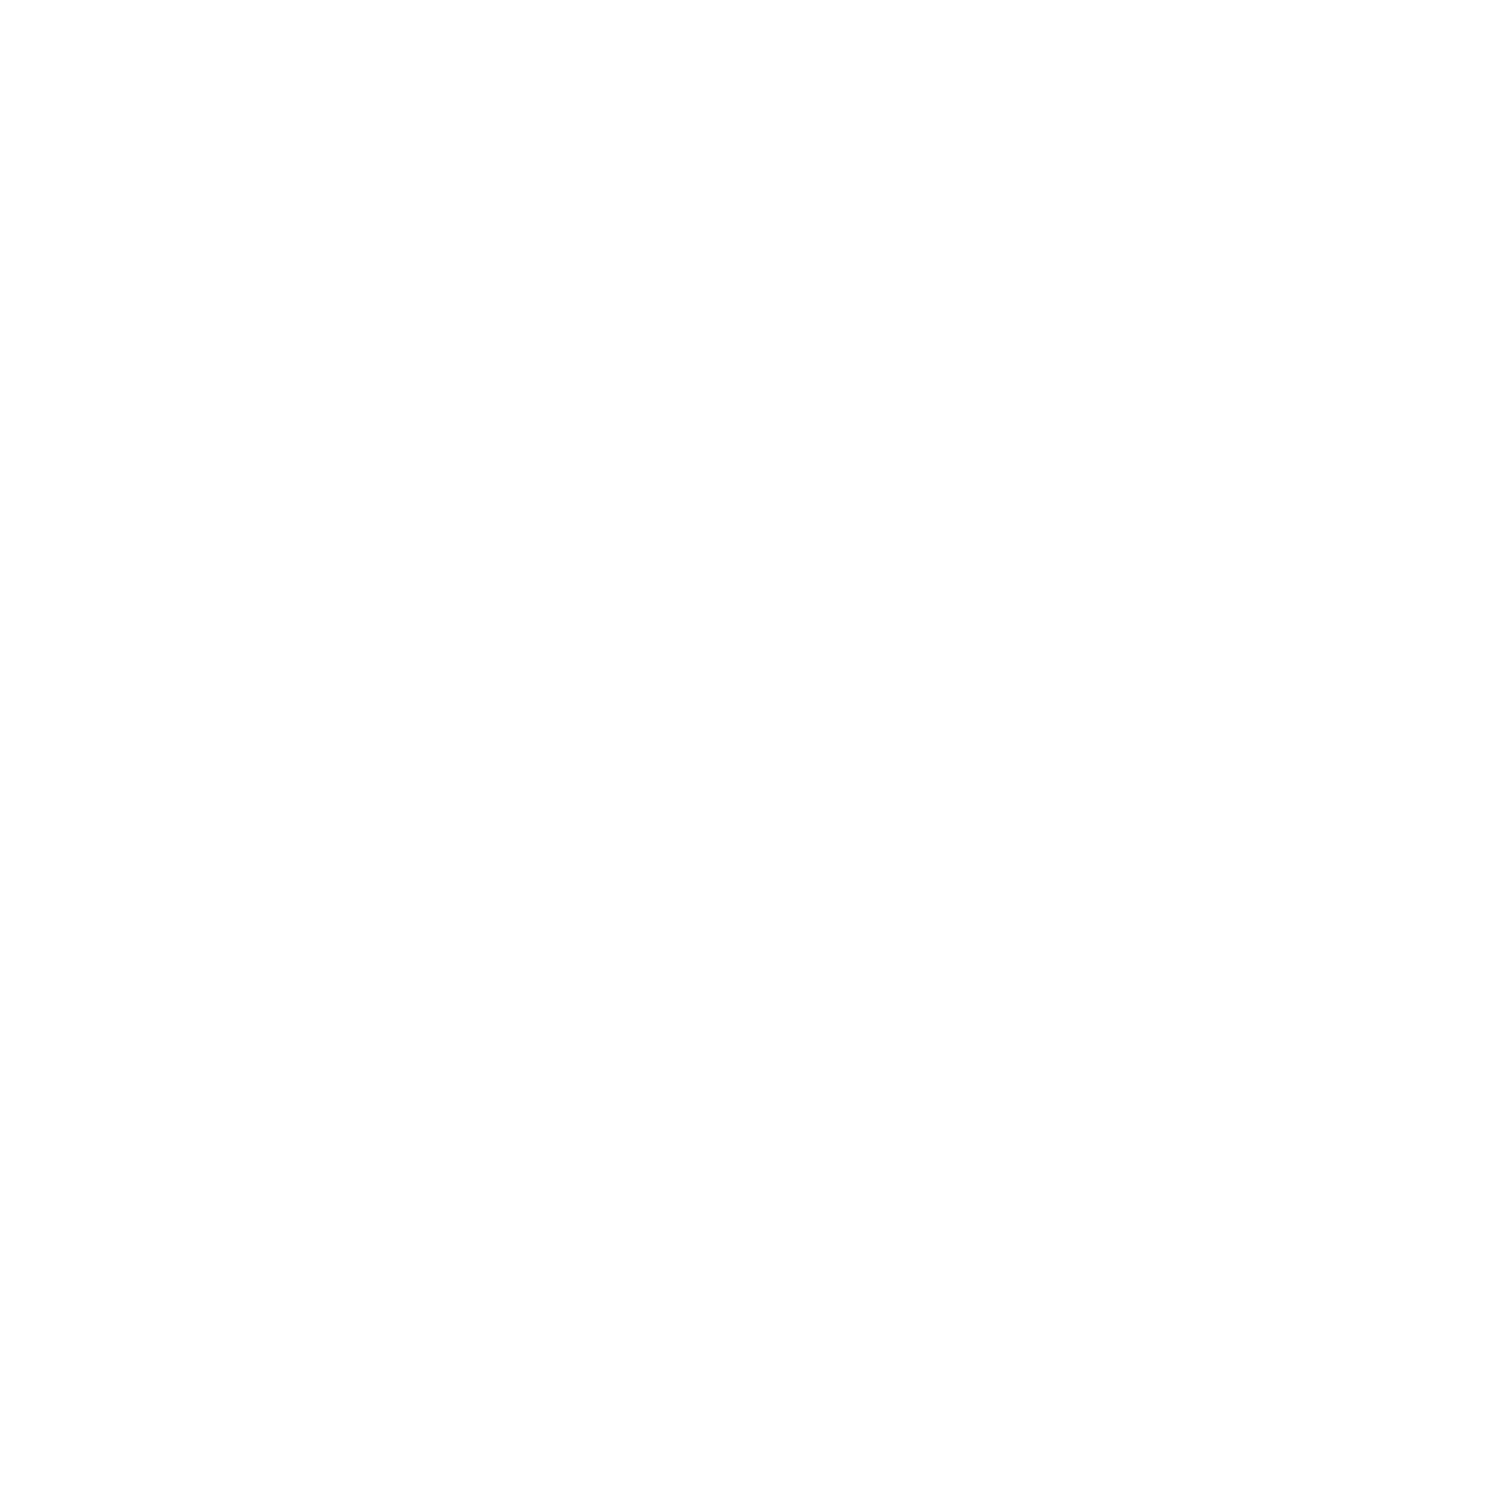 The Heart Street Vegan